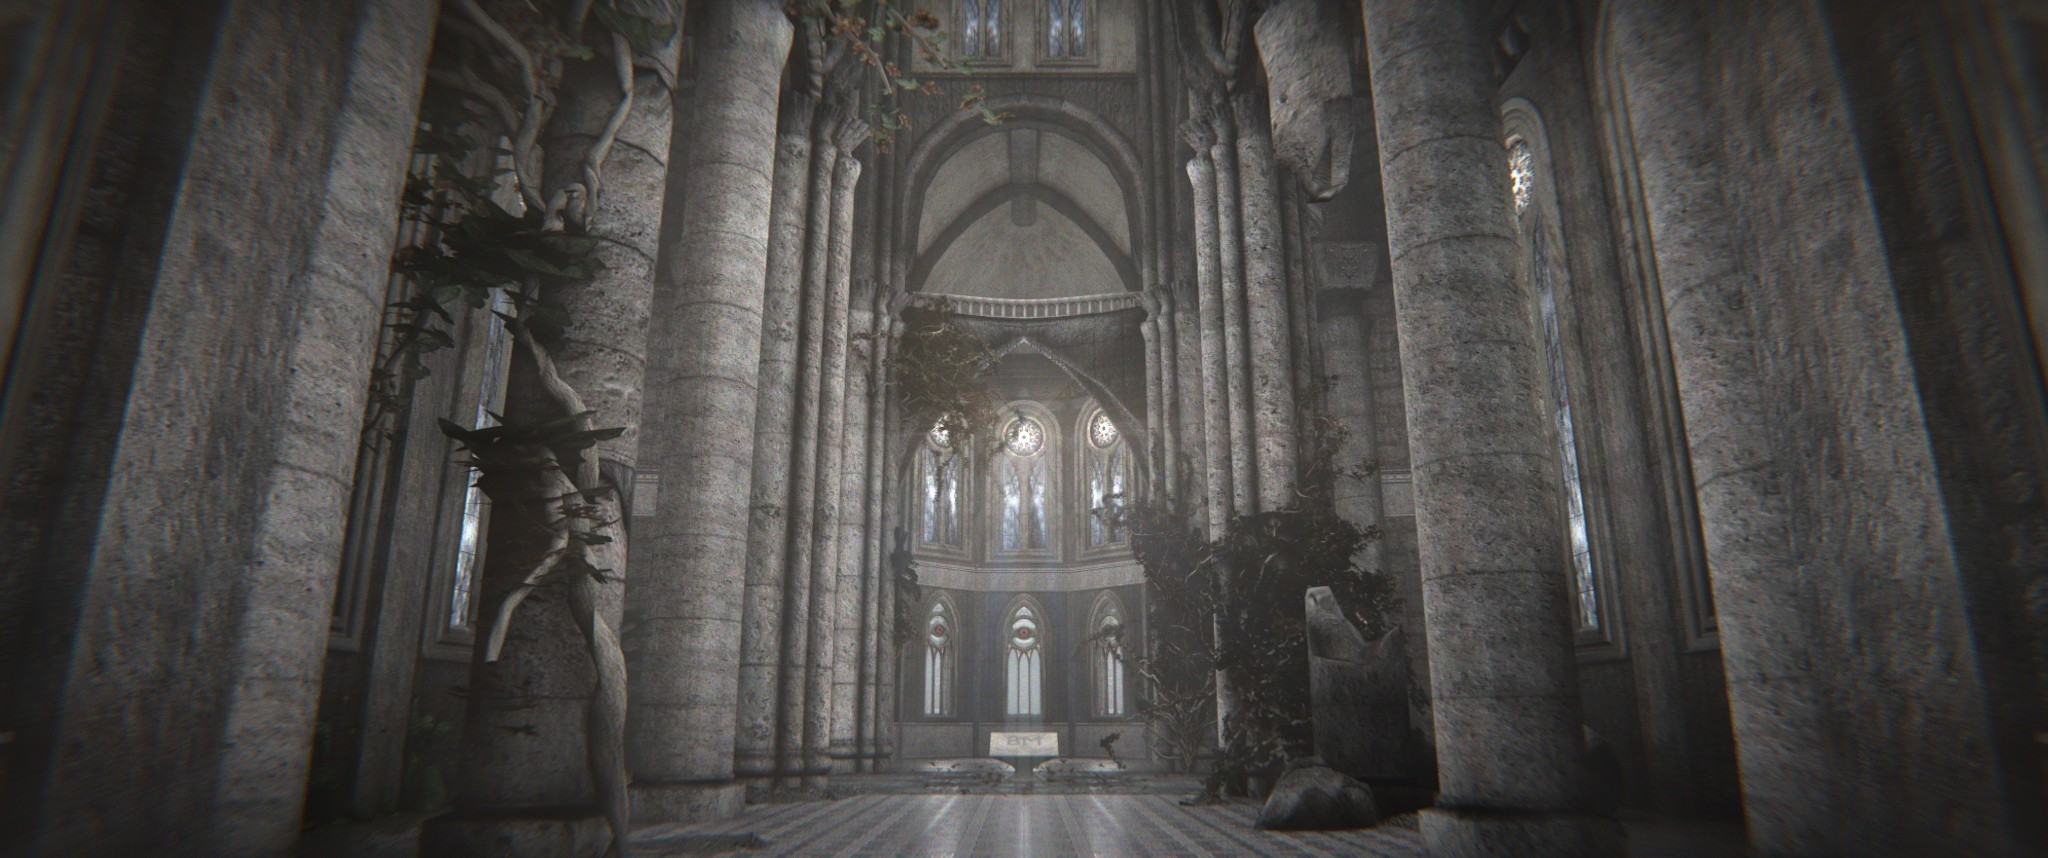 Old_Gothic_Castle_Cycles-01.jpg